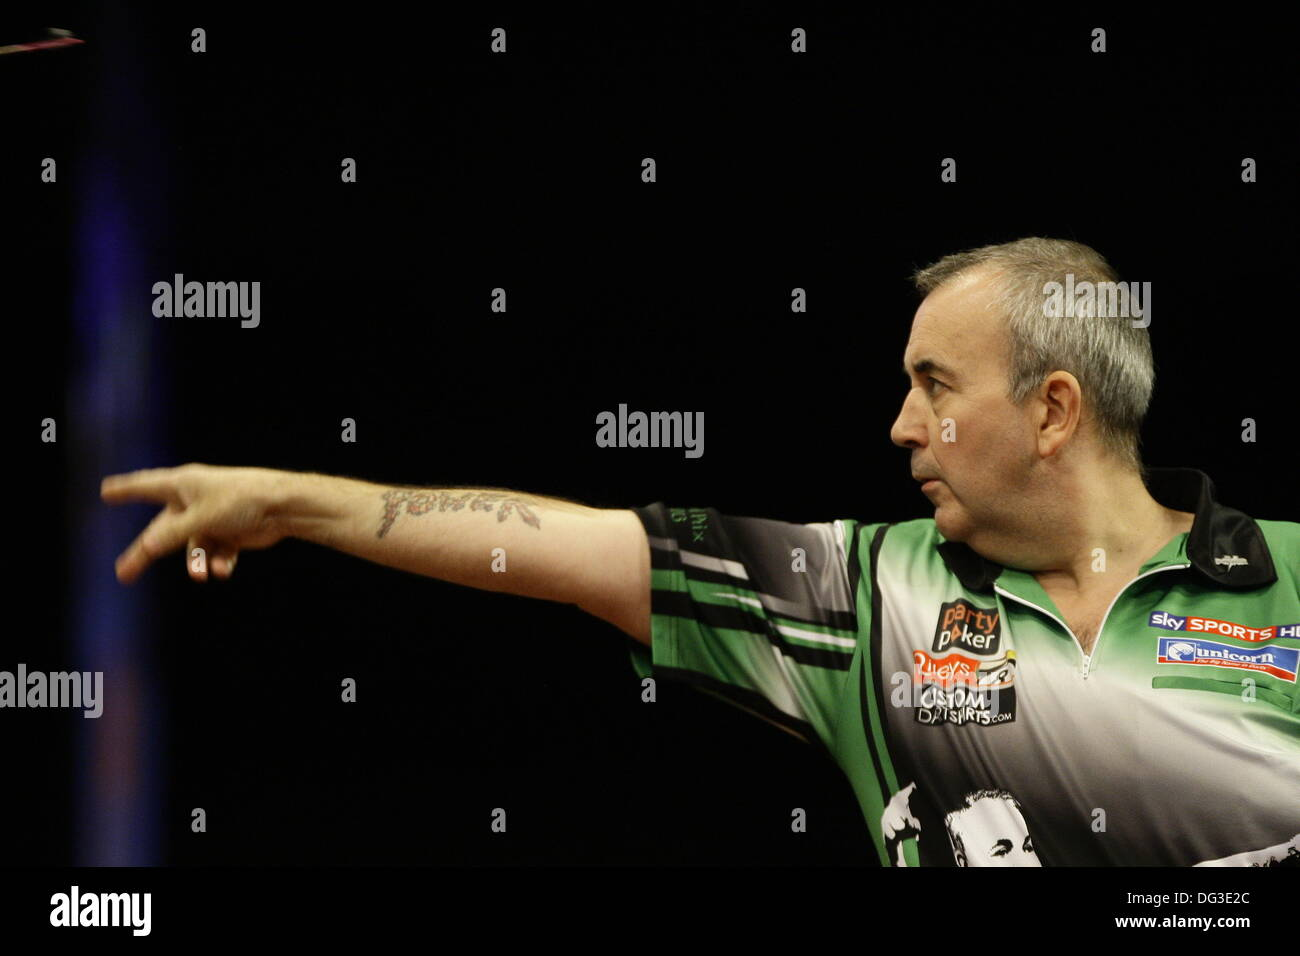 Dublin, Irl. 13th Oct, 2013. Dublin, UK. 13th Oct, 2013. PDC Party Poker World Grand Prix  Darts  -The Final: Phil Taylor in action against Dave Chisnall at the Cirtwest Hotel, Dublin, Ireland © Michael Cullen/Alamy Live News Credit:  Michael Cullen/Alamy Live News - Stock Image